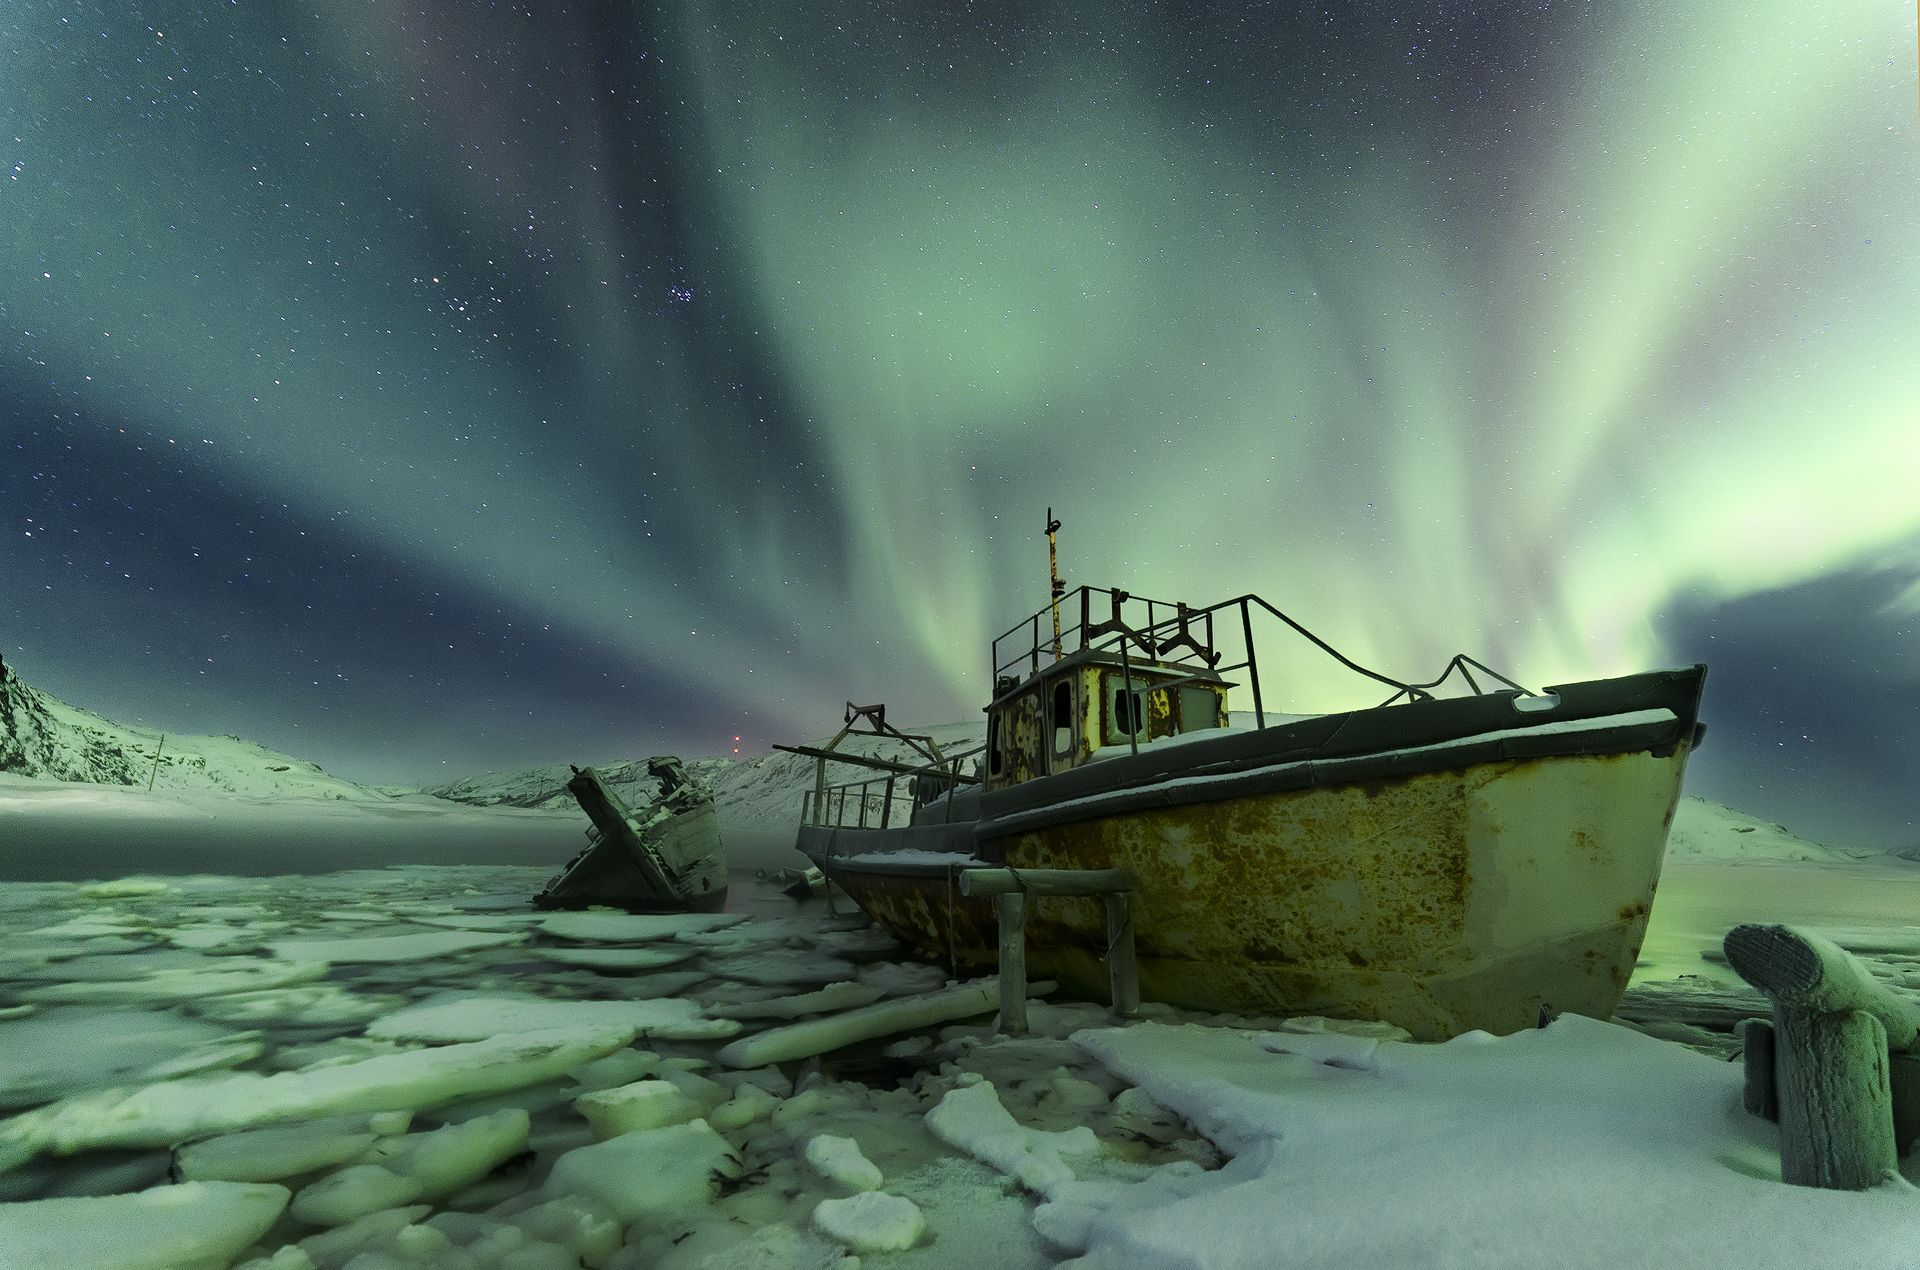 The northern lights glow behind old, abandoned ships in the village of Teriberka, Russia. Once a hub for shipping and fishing, Teriberka experienced an economic downfall that started when the town's administration was taken over by nearby Severomorsk, the home of the Russian Northern Fleet.